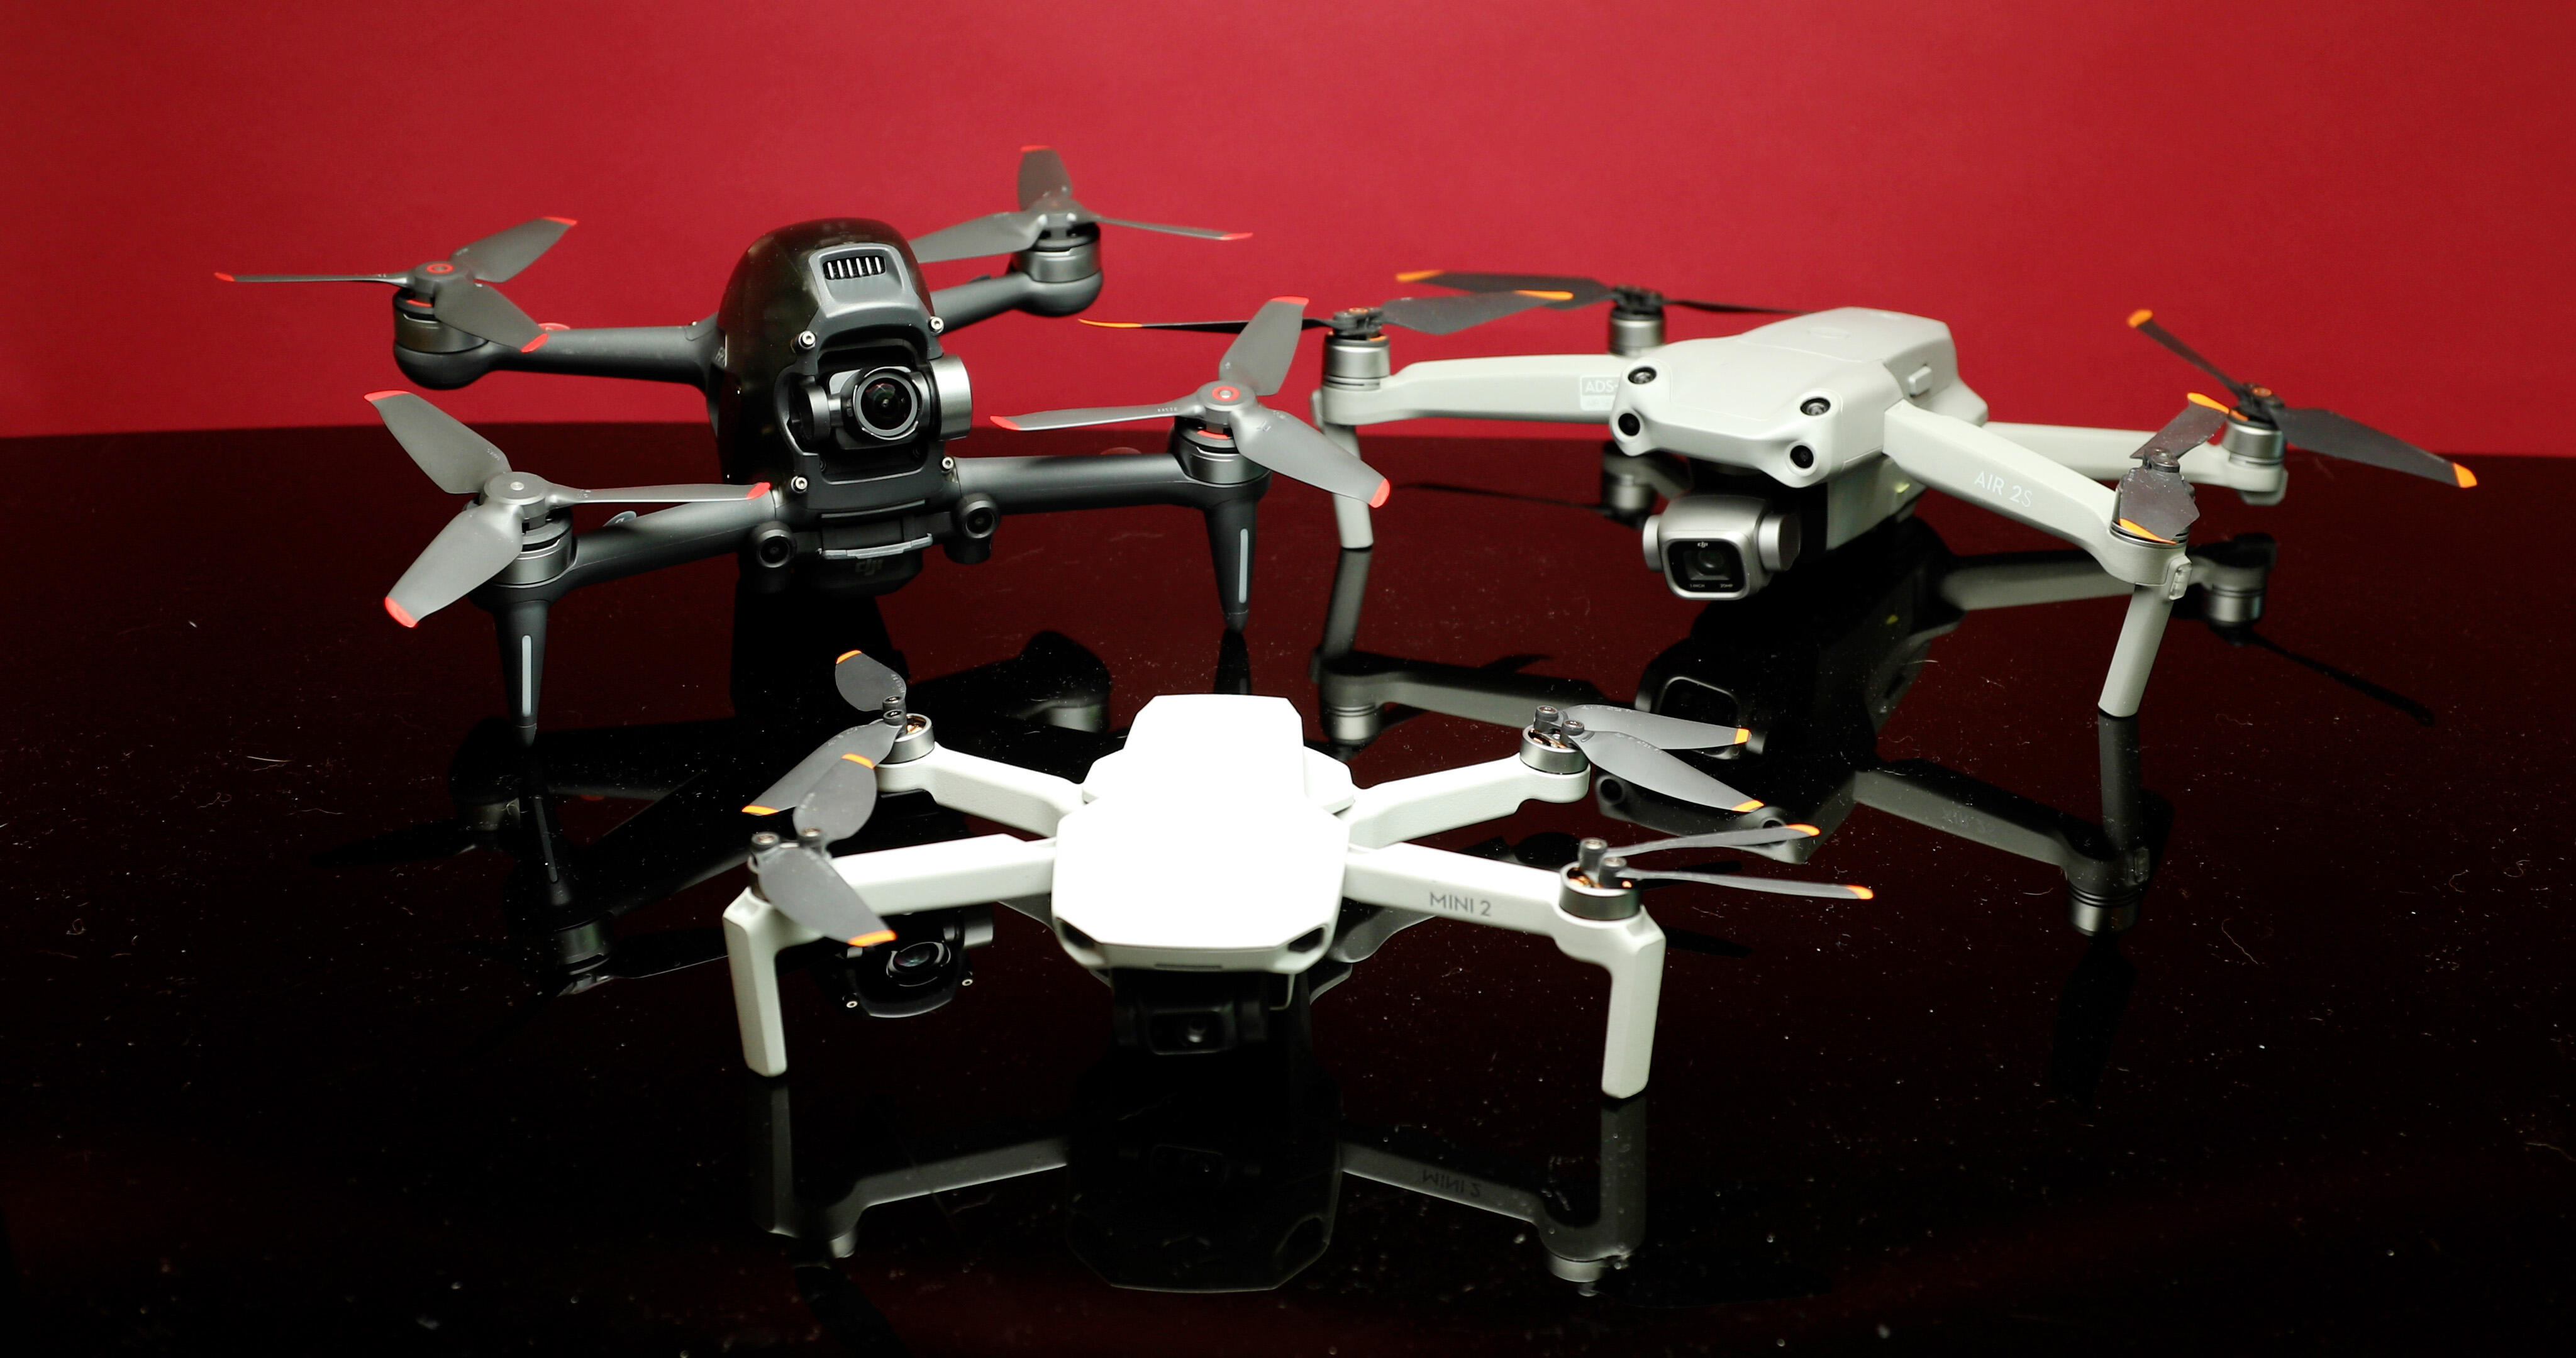 Video: The best DJI drone, whatever your budget